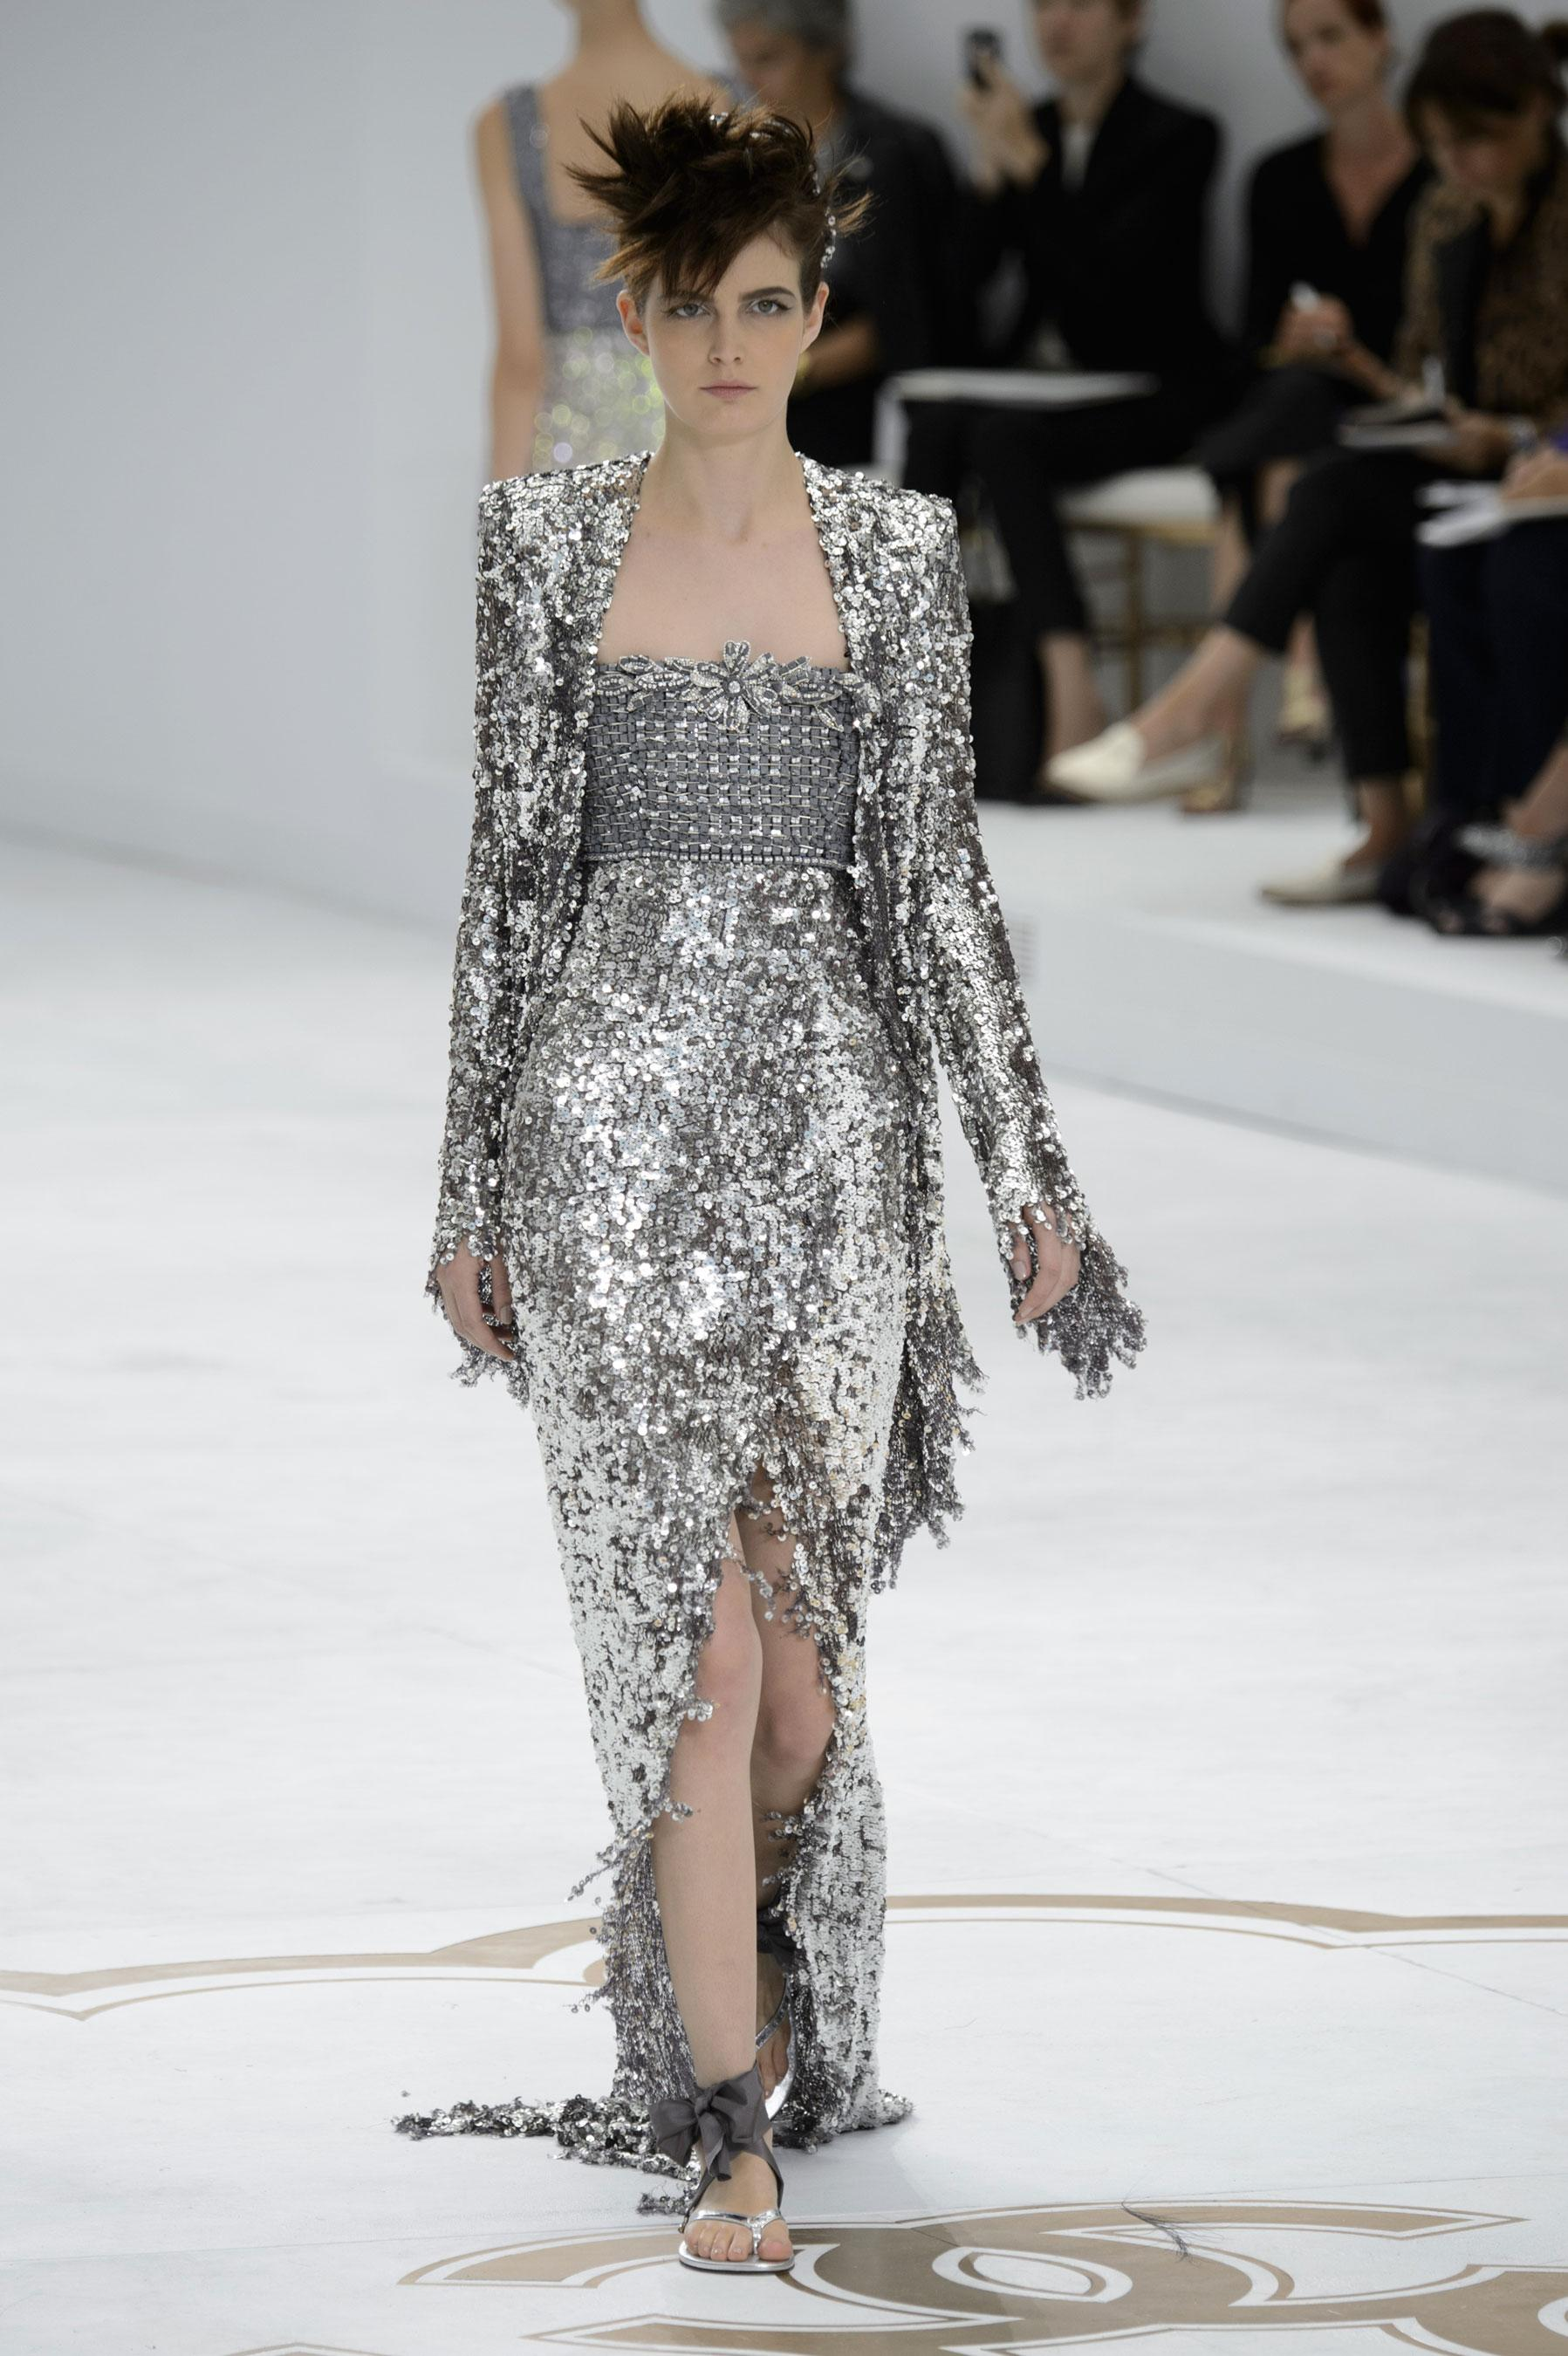 D fil chanel automne hiver 2014 2015 couture madame figaro for 1900 haute couture